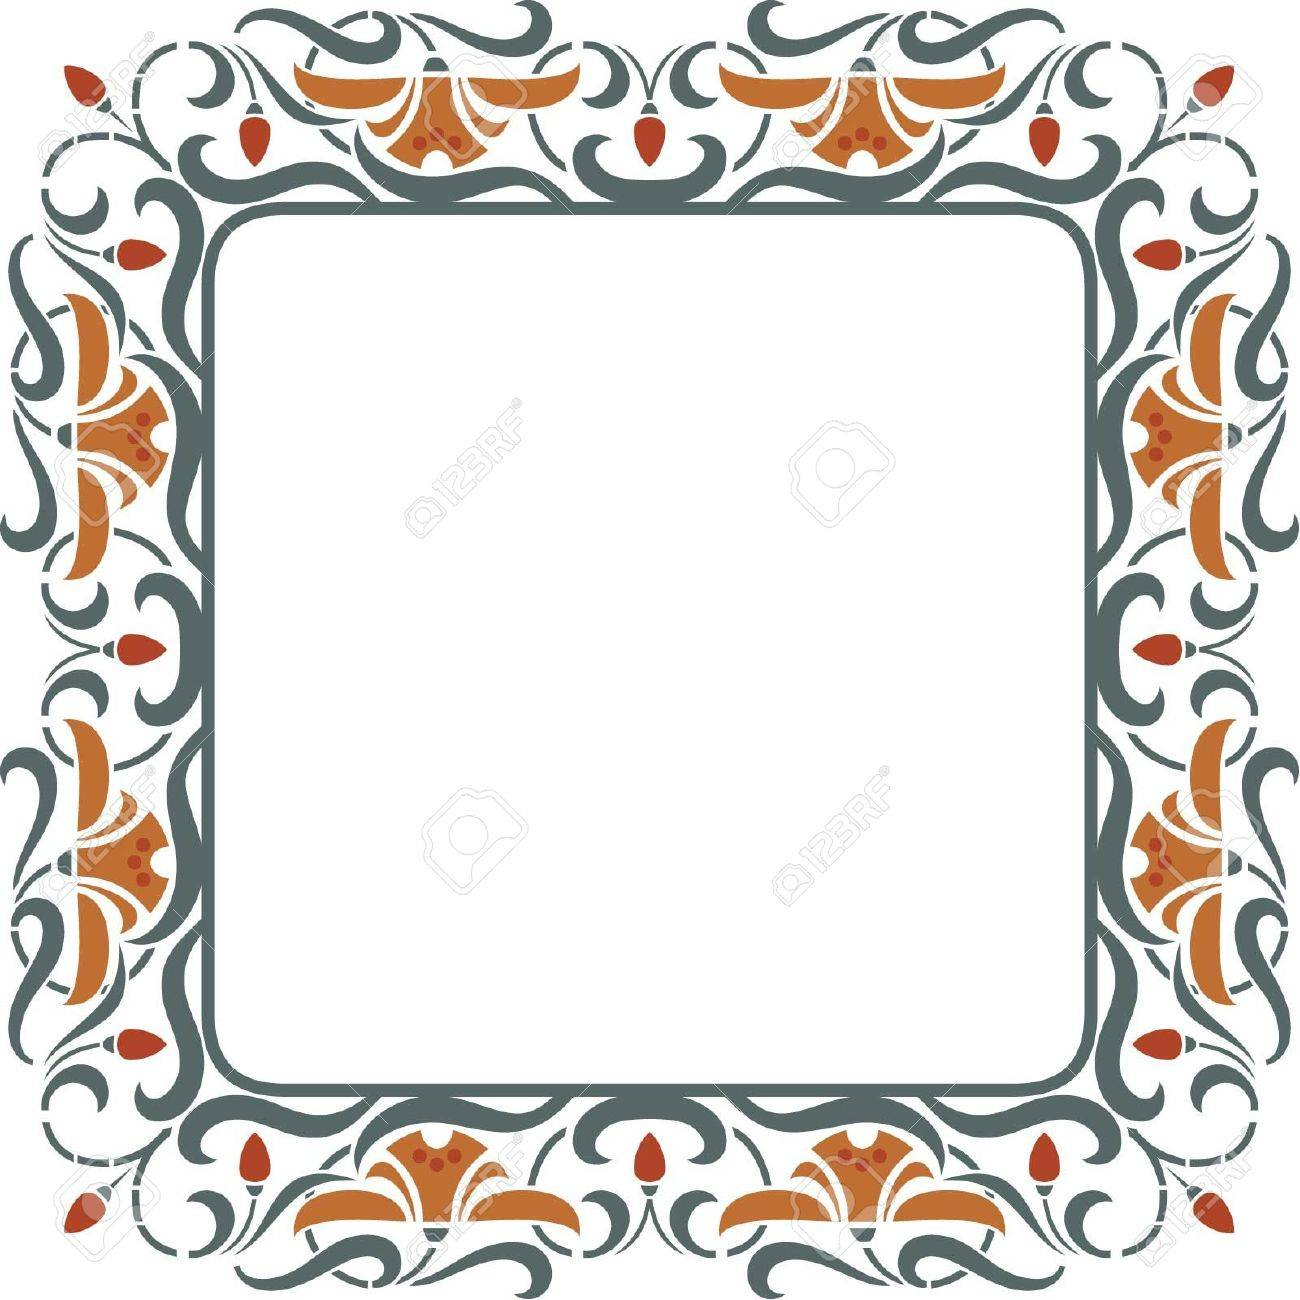 Square vintage vector floral frame - Strawberry with blossom Stock Vector - 18345291